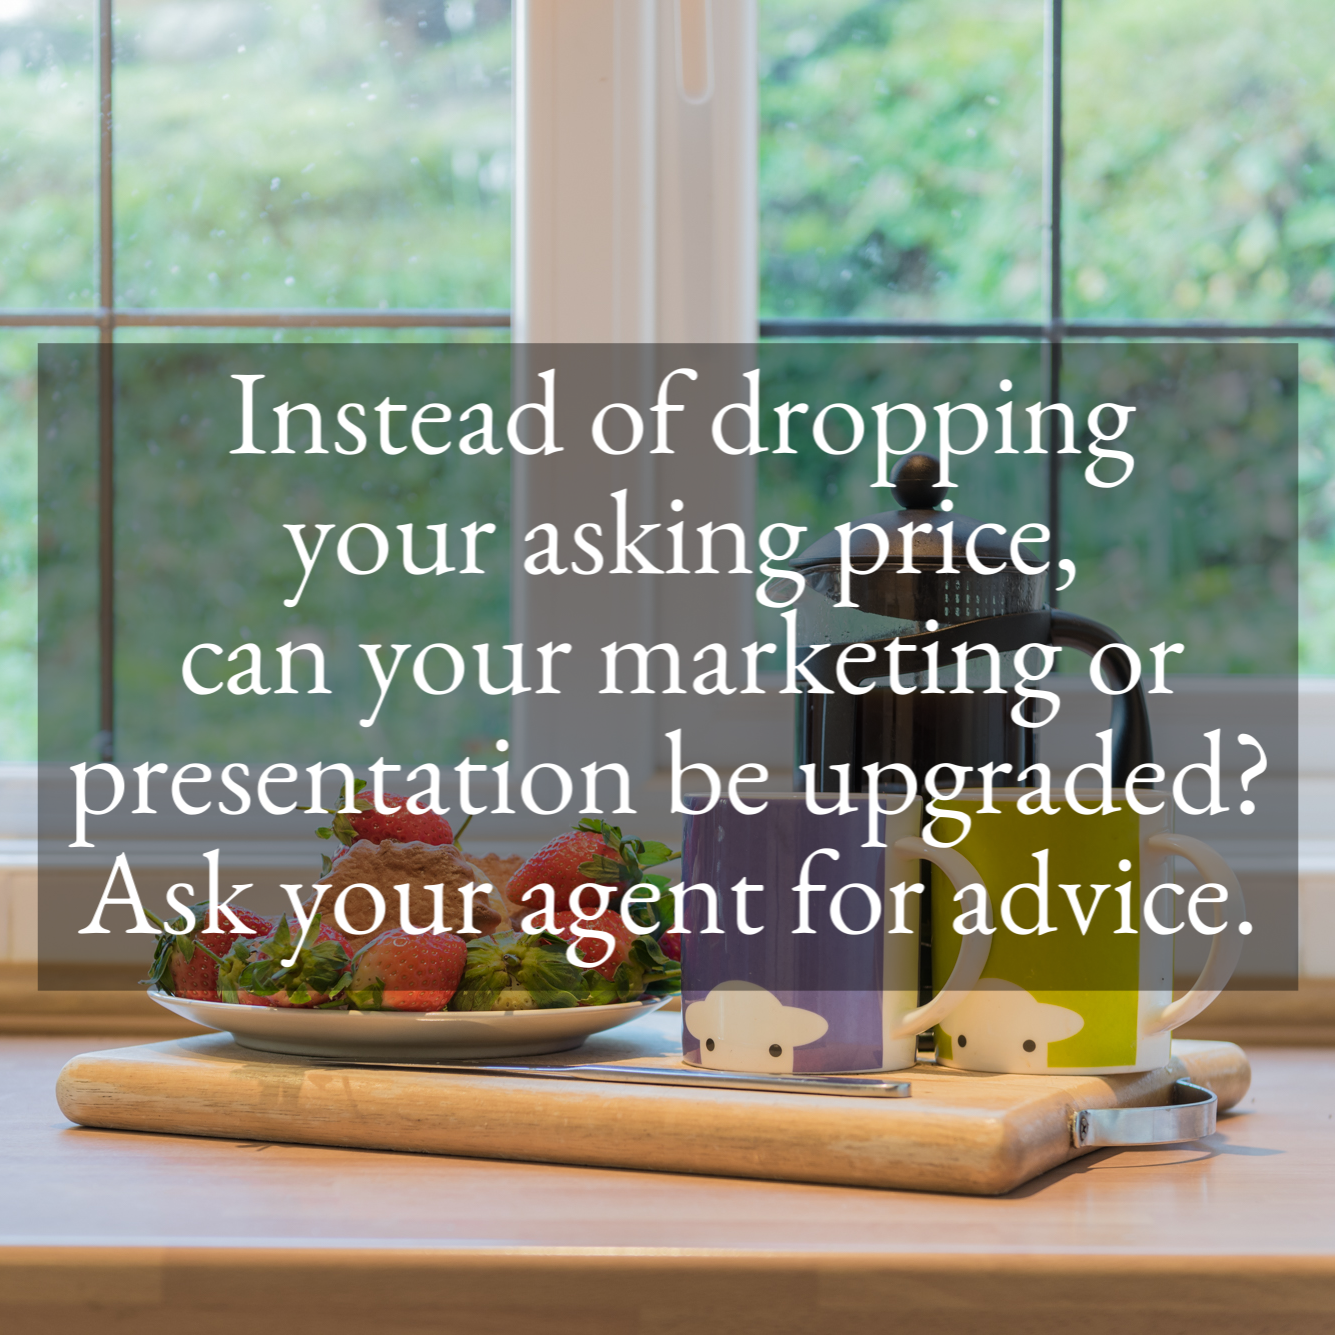 tg7-instead-of-dropping-your-asking-price